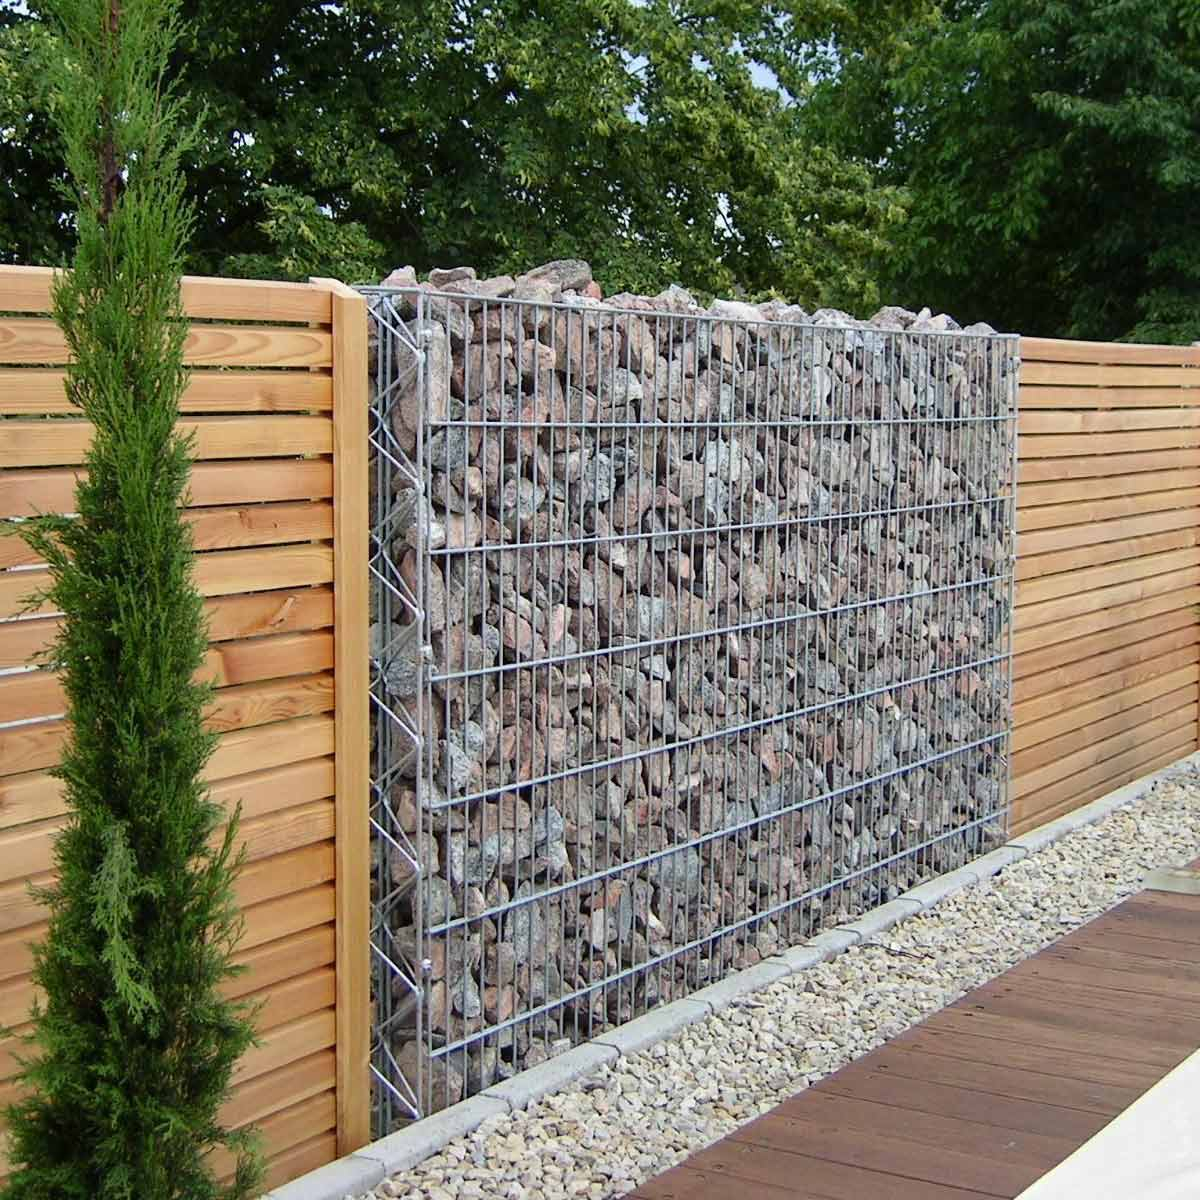 Yard Fencing 10 Modern Fence Ideas Family Handyman regarding Backyard Fencing